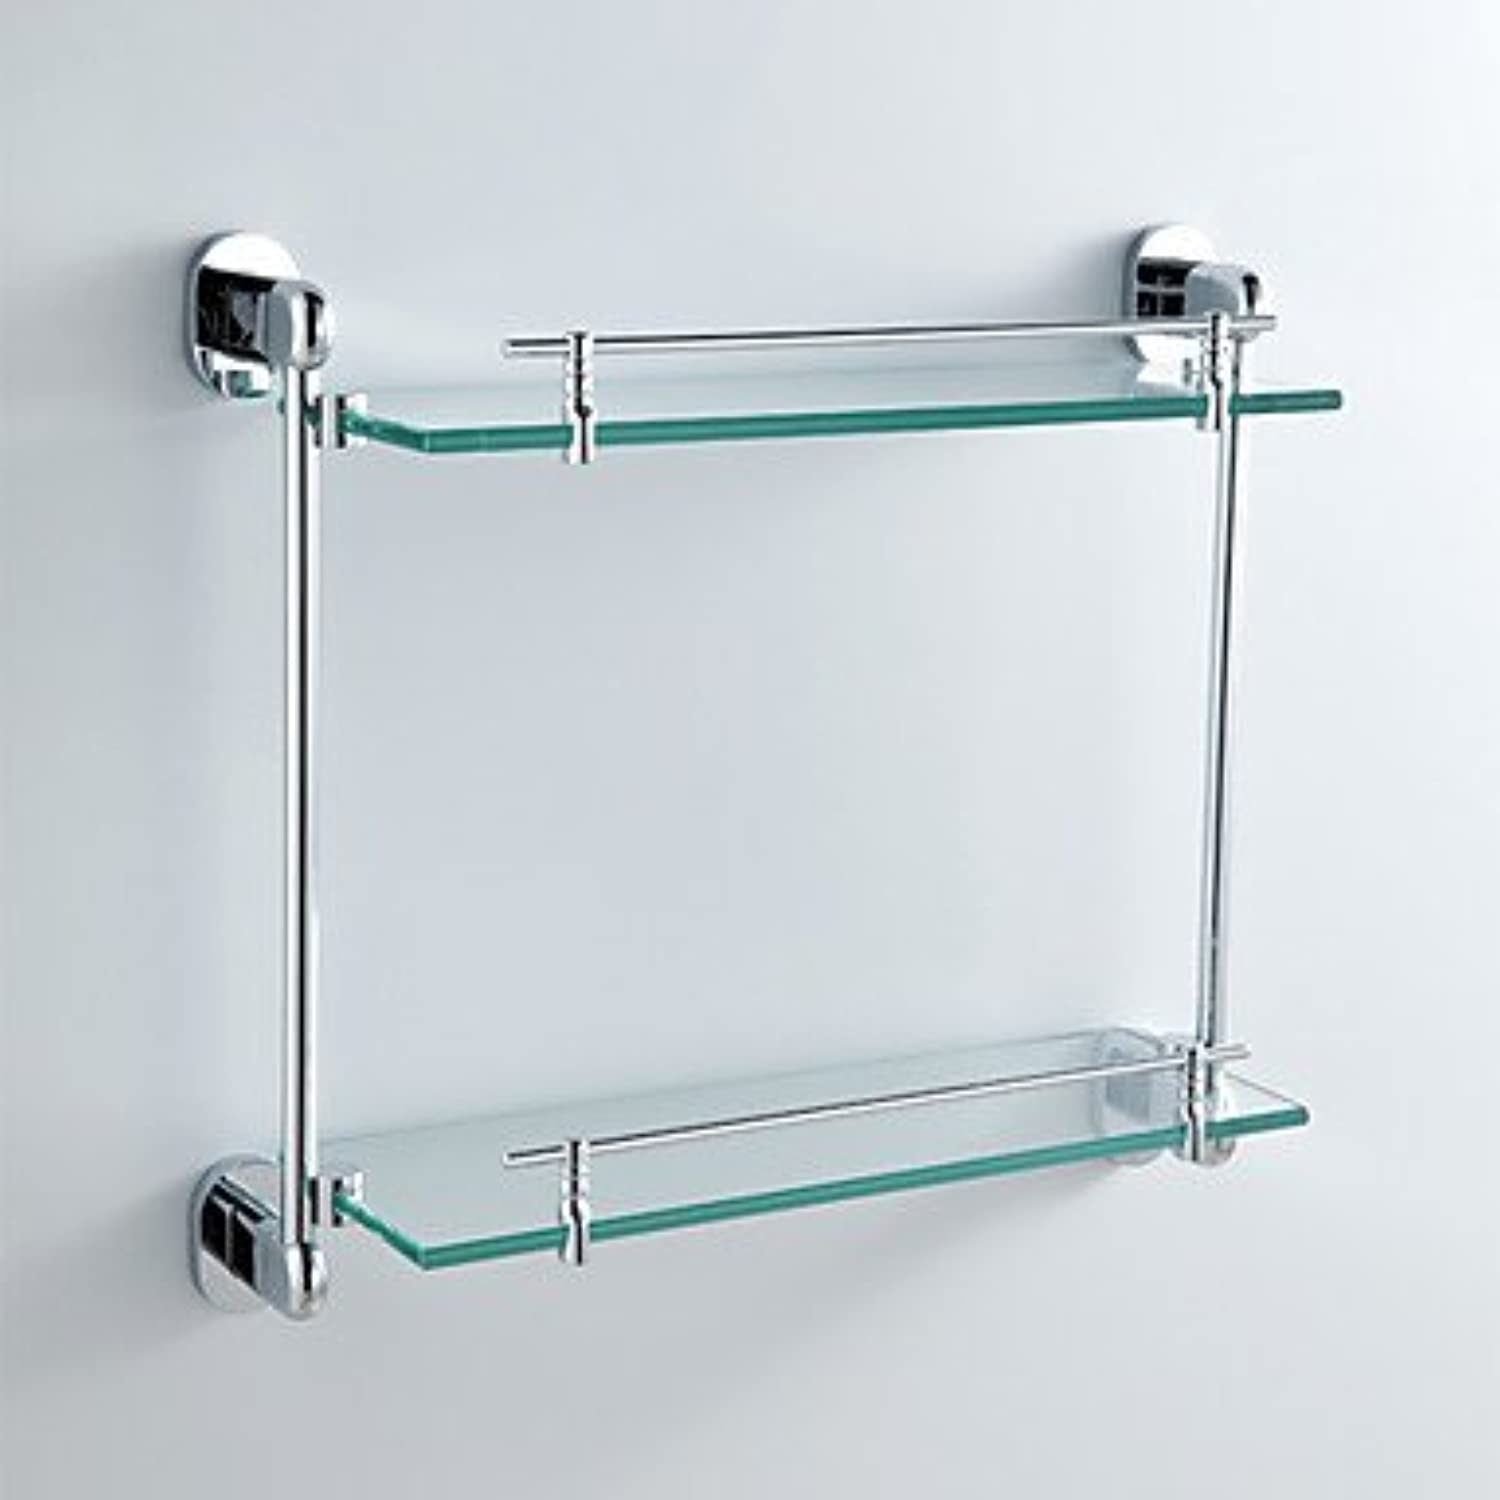 Bathroom Shelf Chrome Wall Mounted 441 x 135 x 400mm (17.3 x 5.31 x 26.7 ) Brass Contemporary